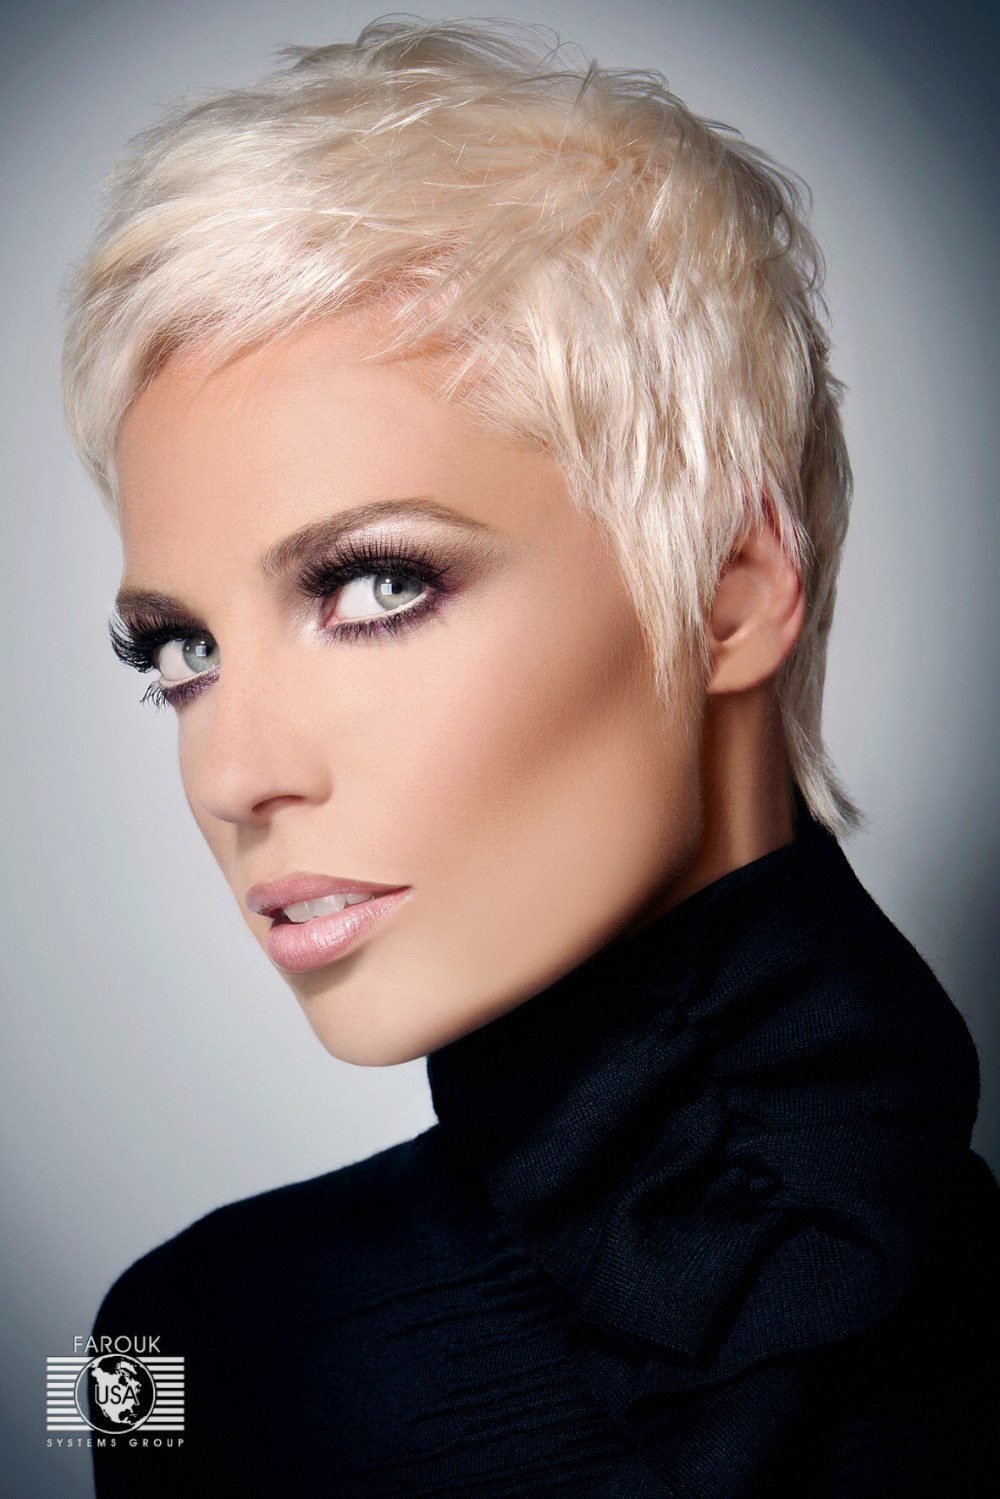 Best ideas about Hairstyle Short Hair . Save or Pin Very short blonde hairstyle Now.